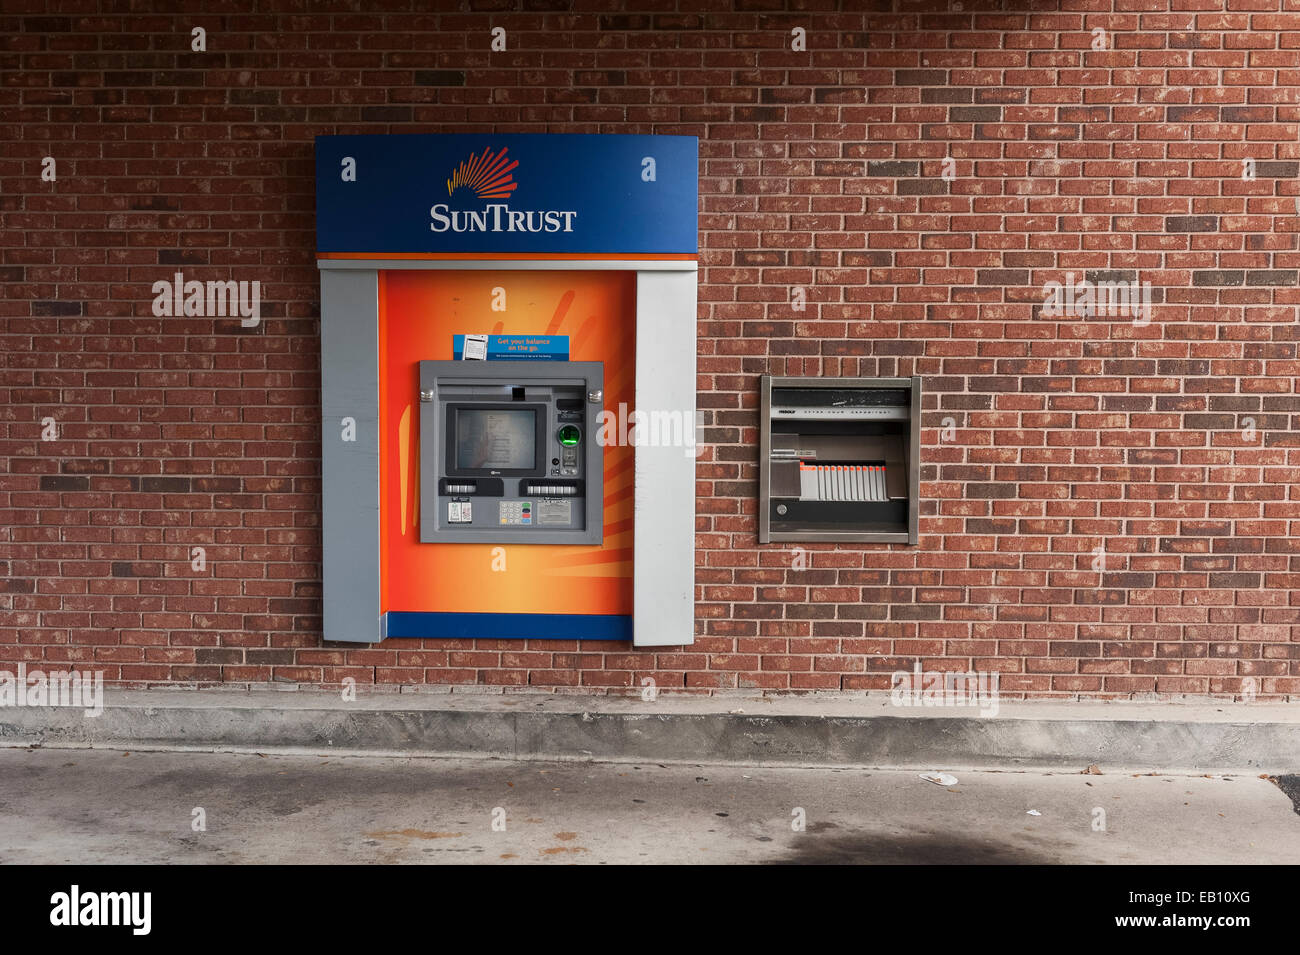 can you deposit a check at a bb&t atm